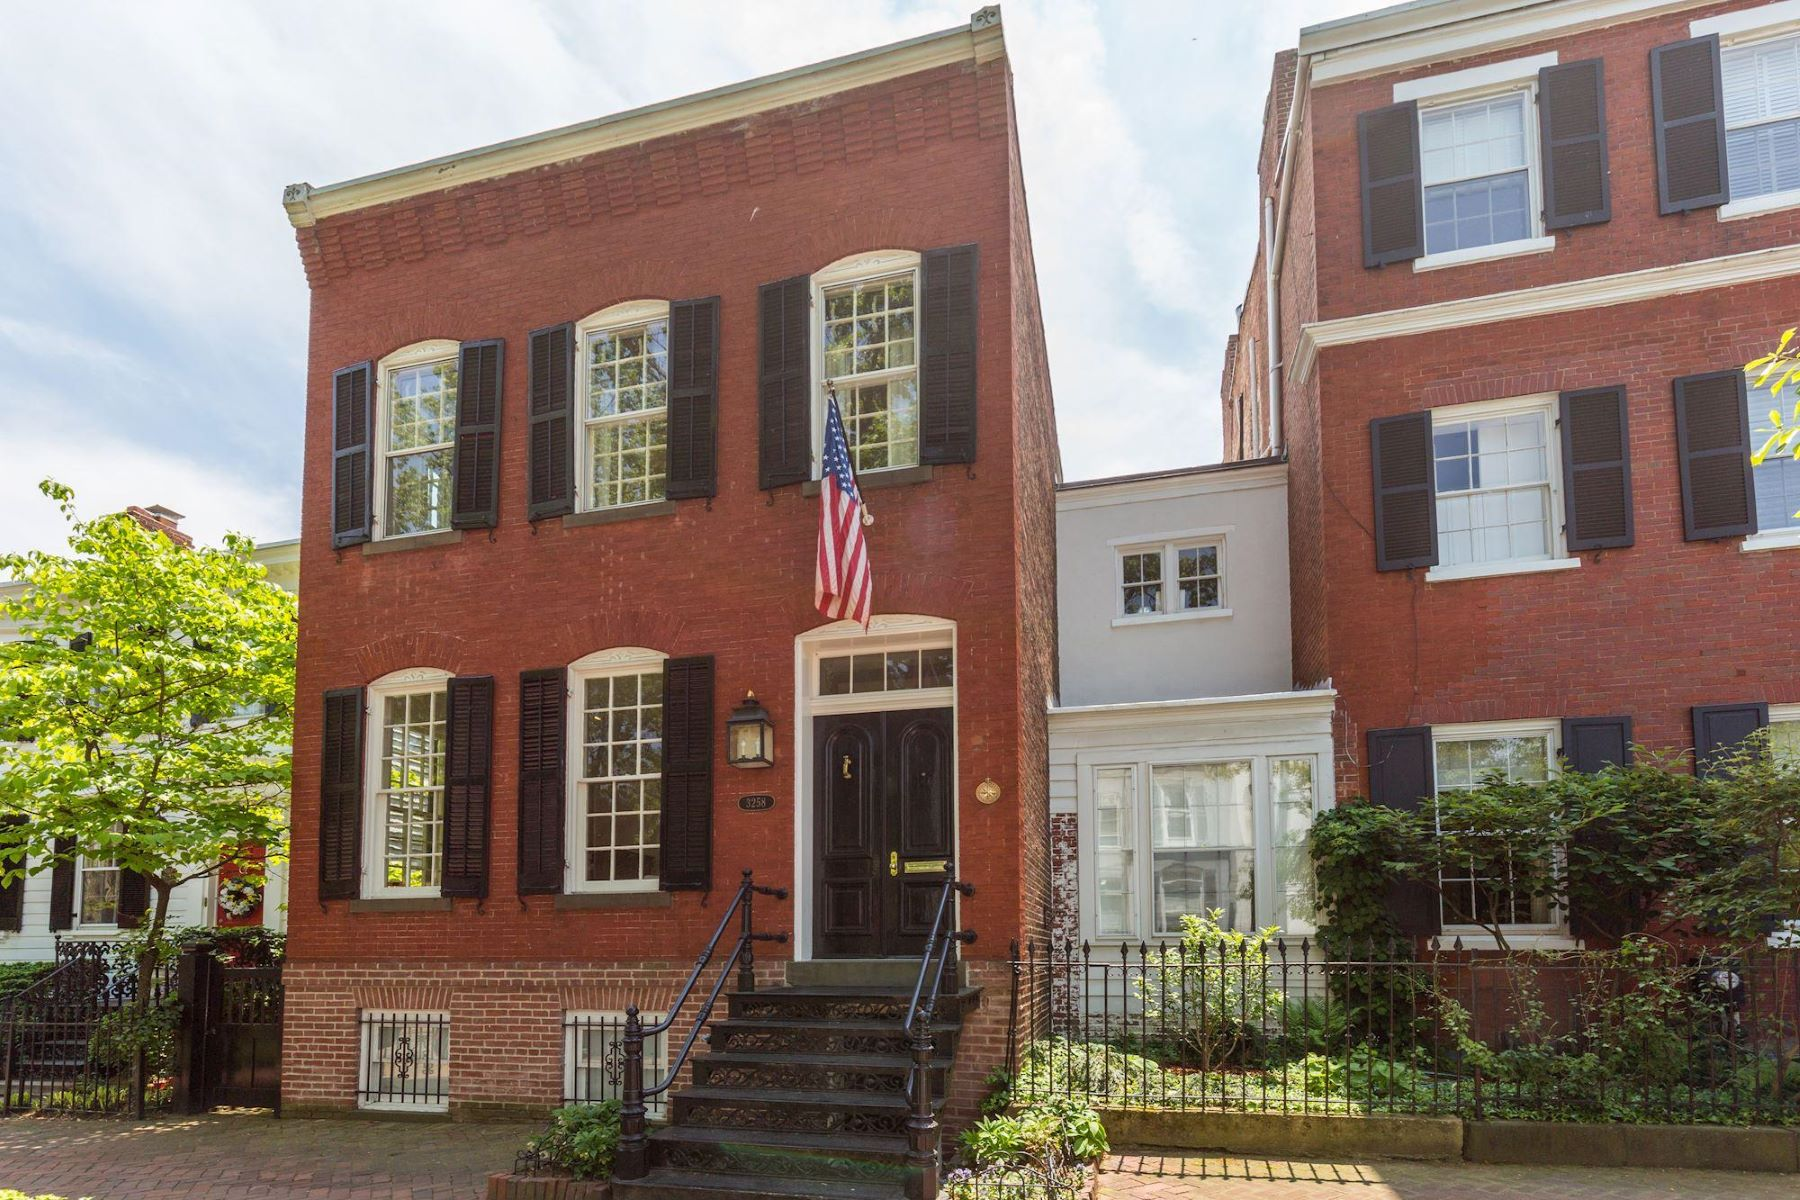 Single Family Home for Sale at 3258 O St Nw 3258 O St Nw Washington, District Of Columbia 20007 United States